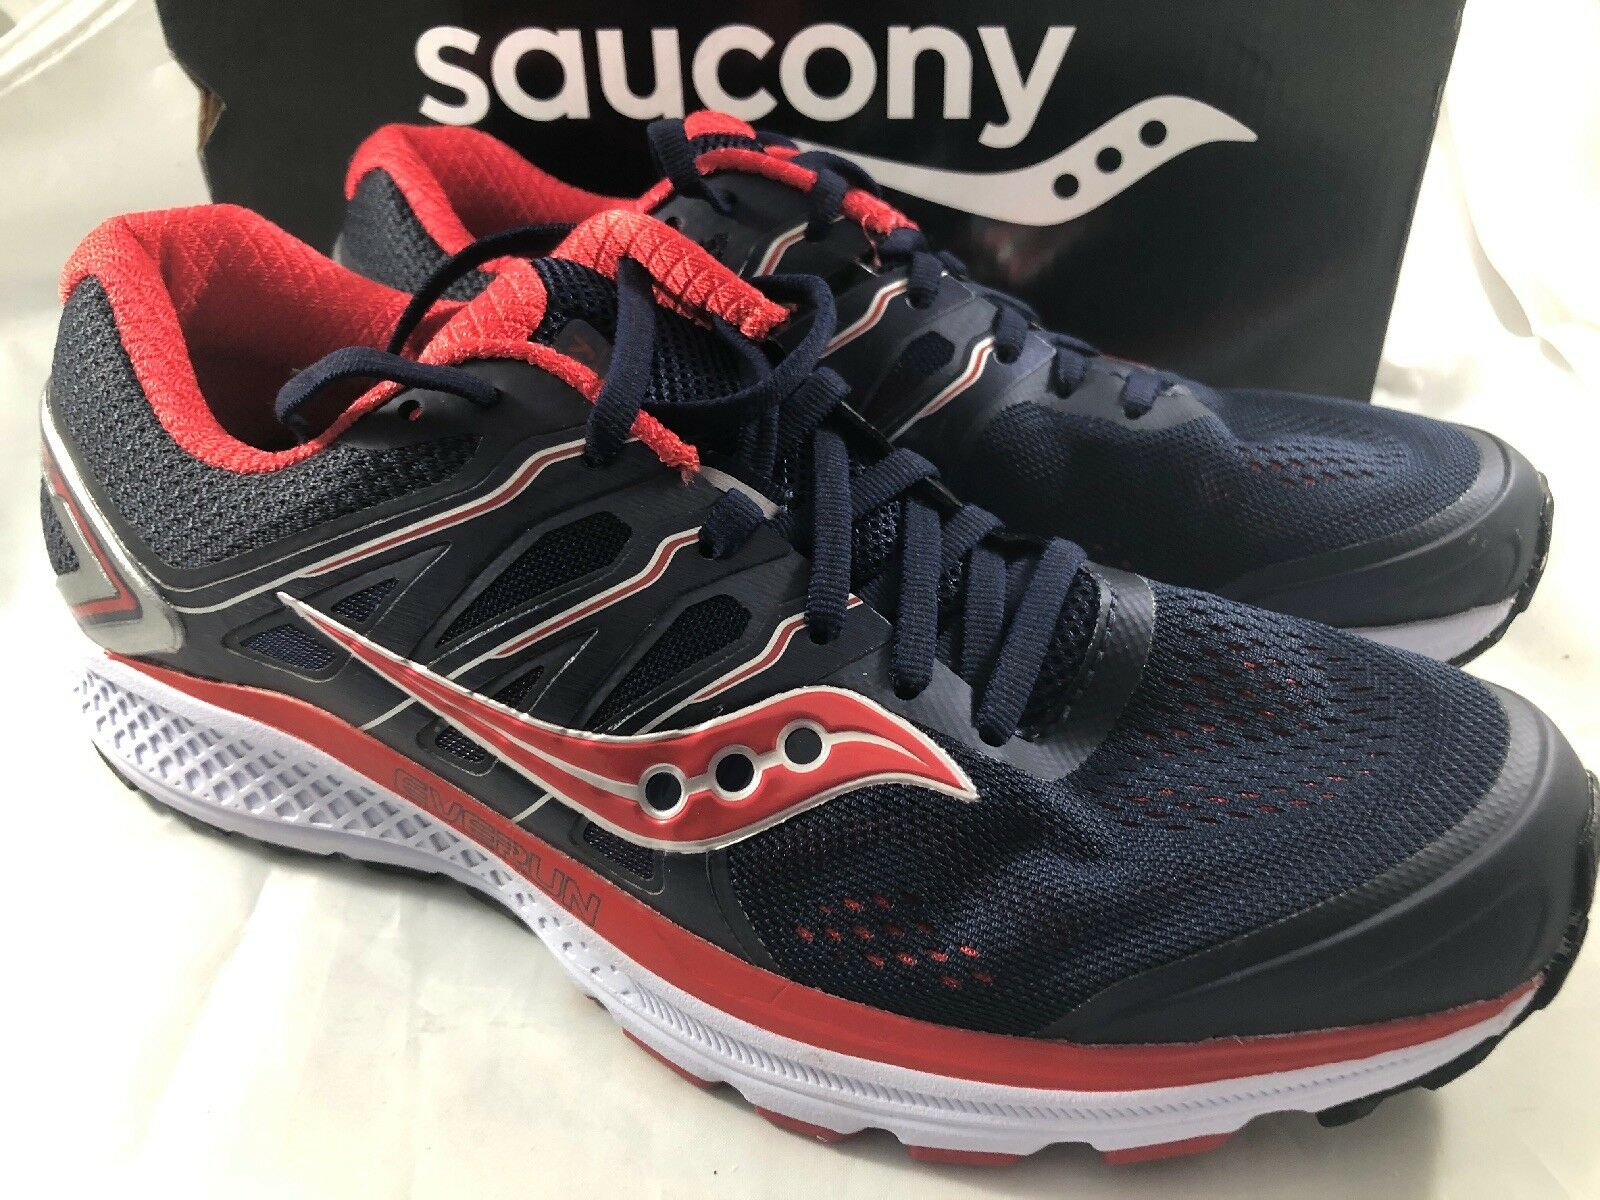 Saucony Omni 16 S20370-2 Men Size 10 Navy Red